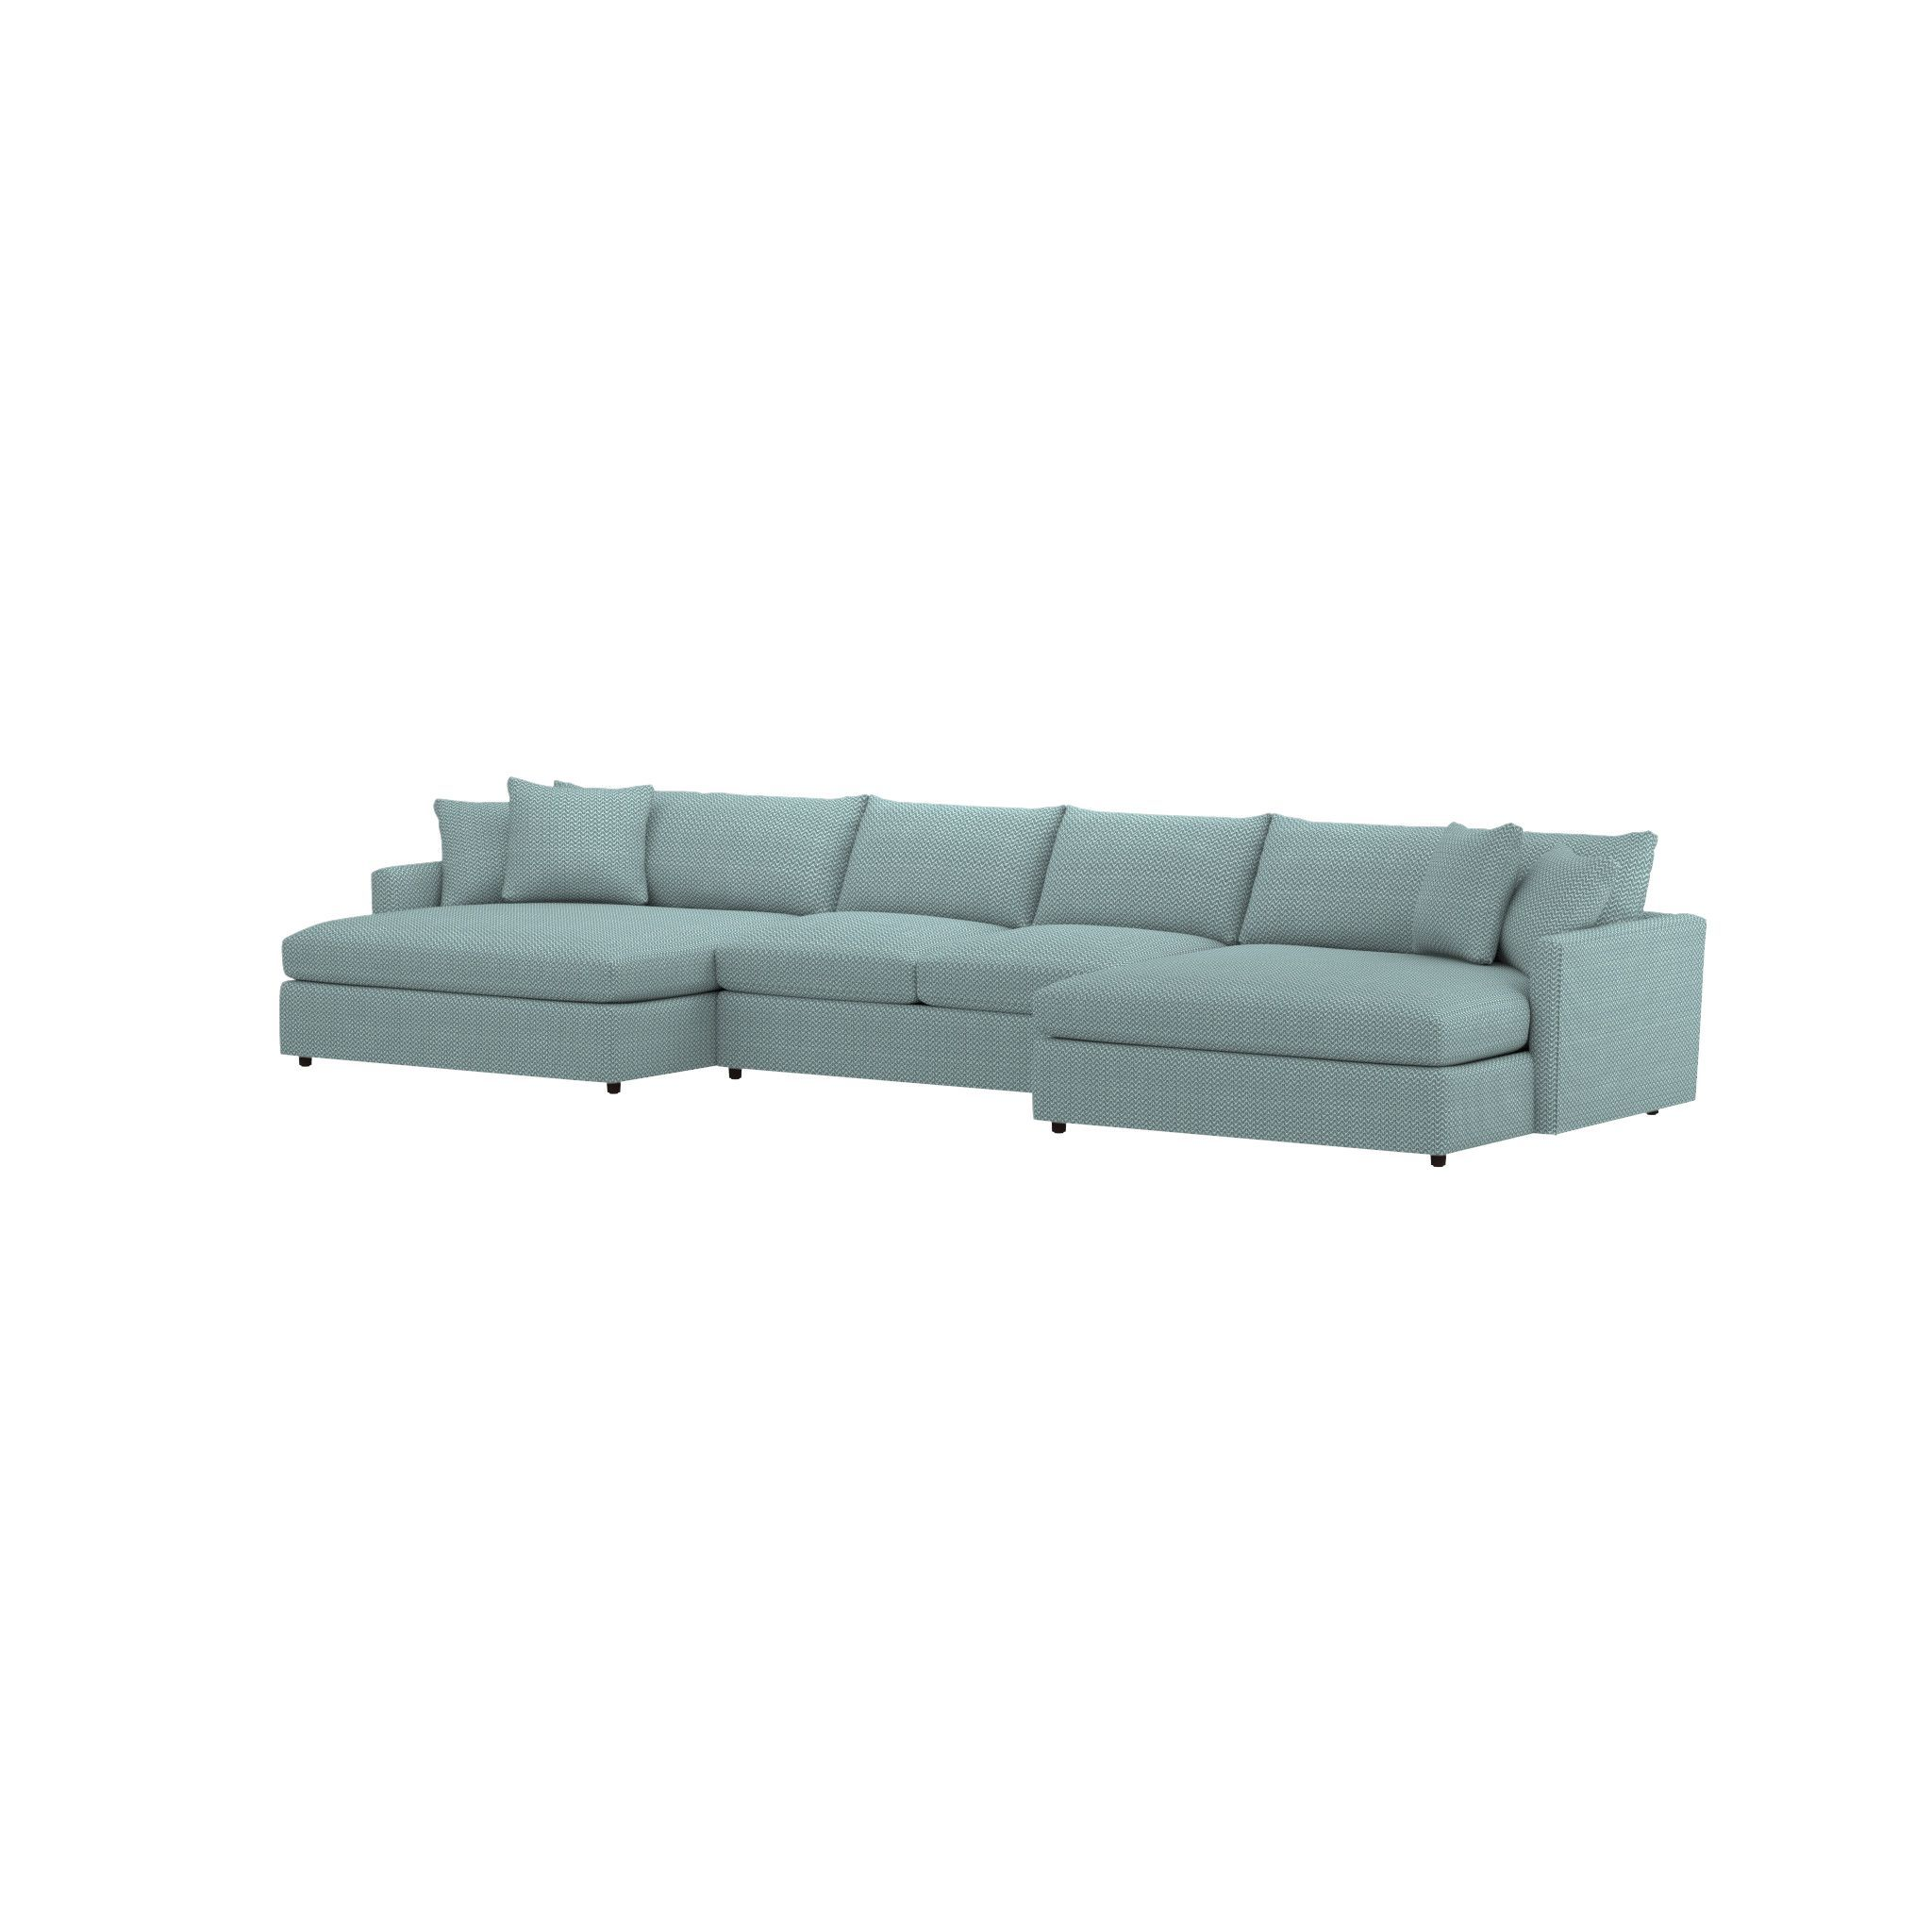 Shop lounge ii petite 3 piece double chaise sectional sofa consisting of two double chaises and an armless sofa the sectional is upholstered in a soft